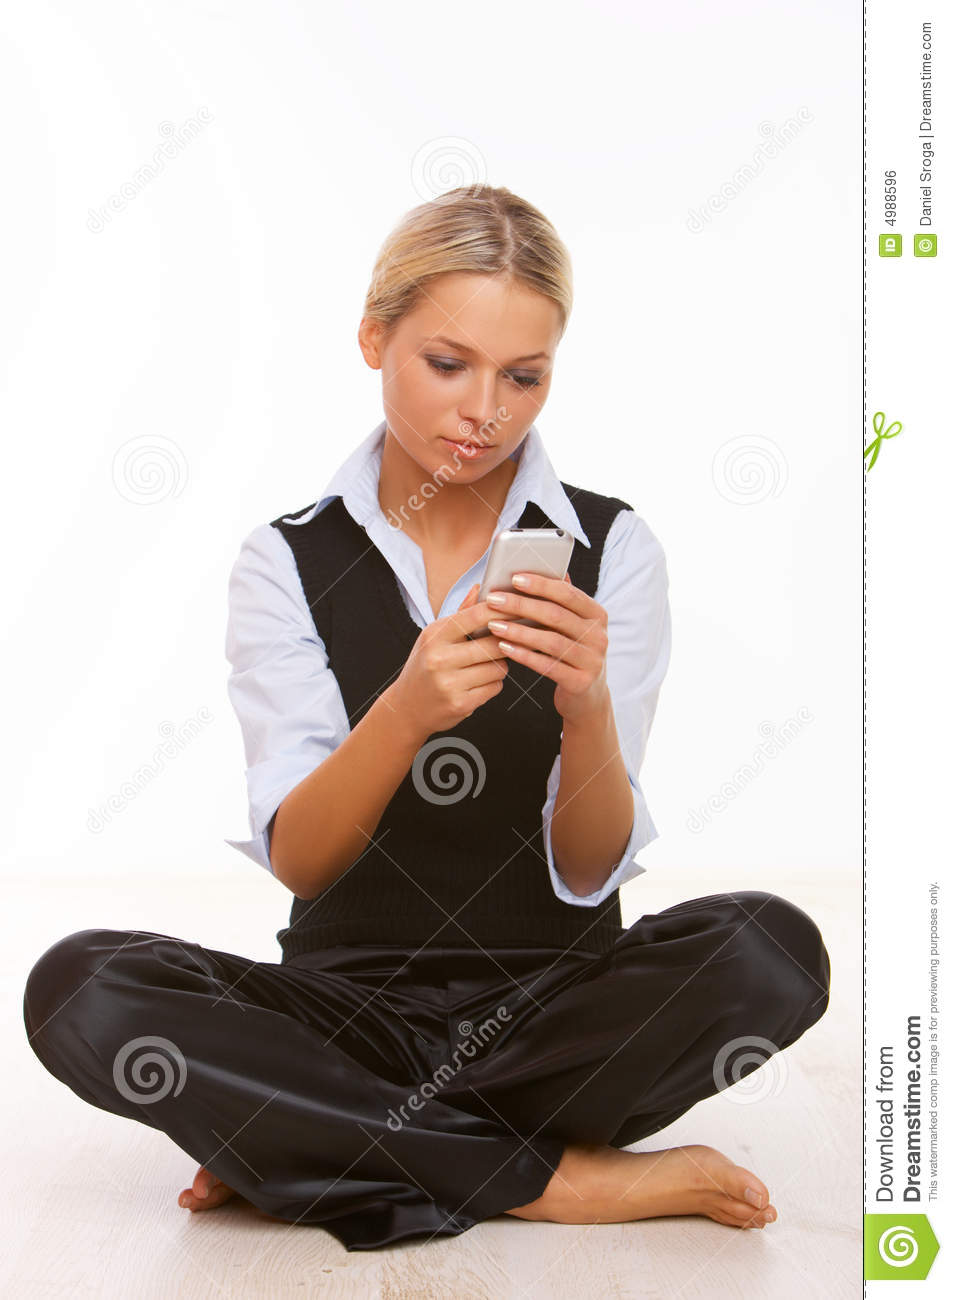 Young Woman Talking On Cell Phone Royalty Free Stock ...